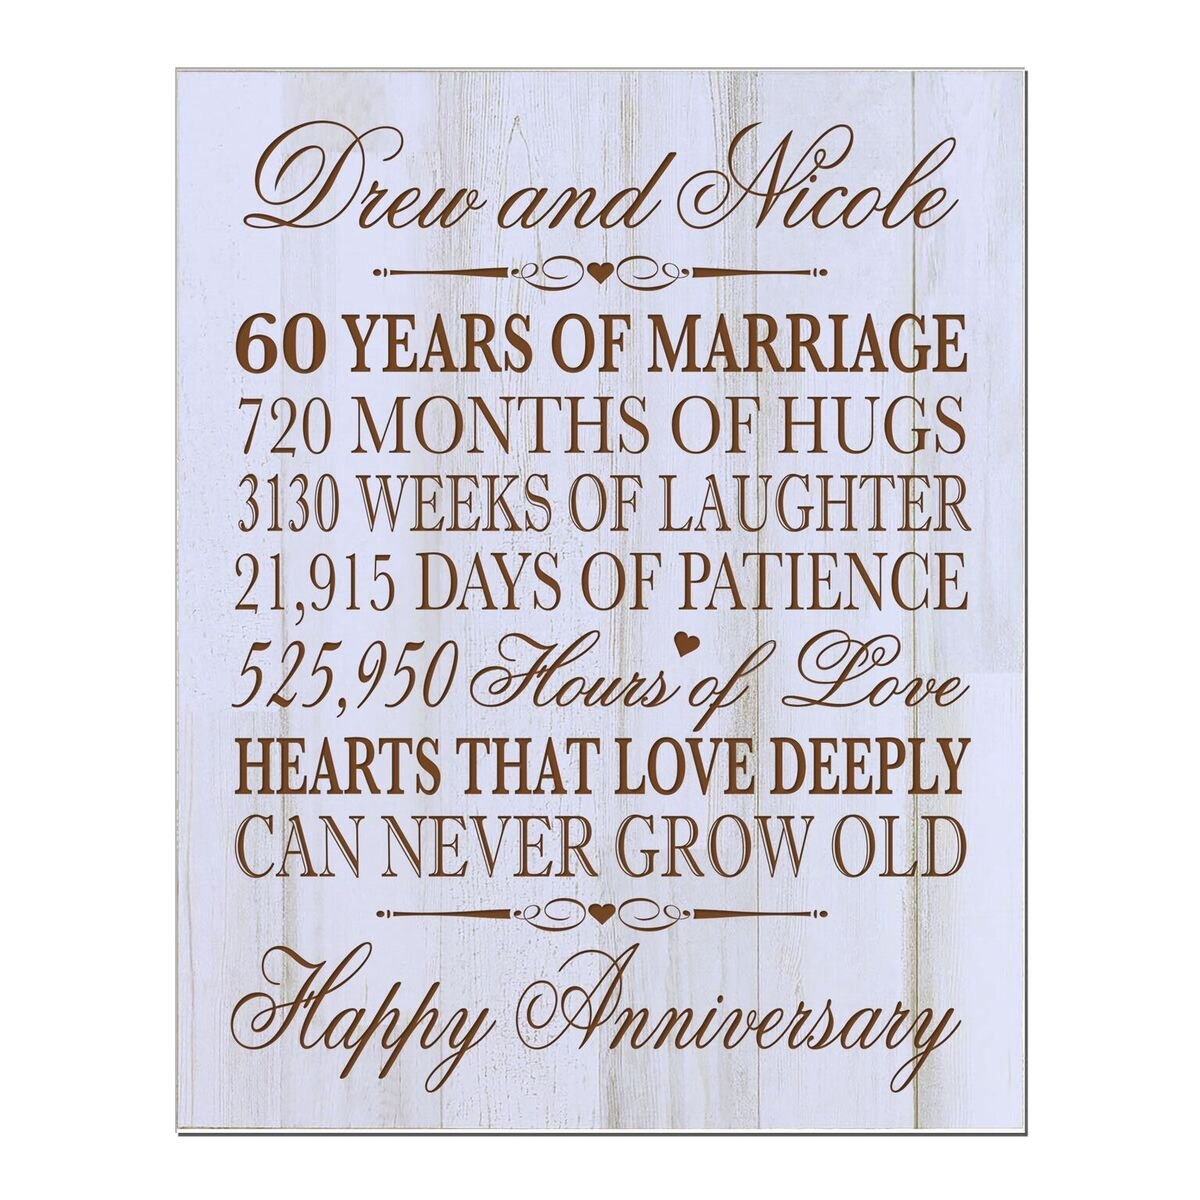 LifeSong Milestones Personalized 60th Wedding Anniversary Wall Plaque Gifts for Couple, Custom Made 60th for Her,60th 12'' W X 15'' H Wall Plaque (DW)